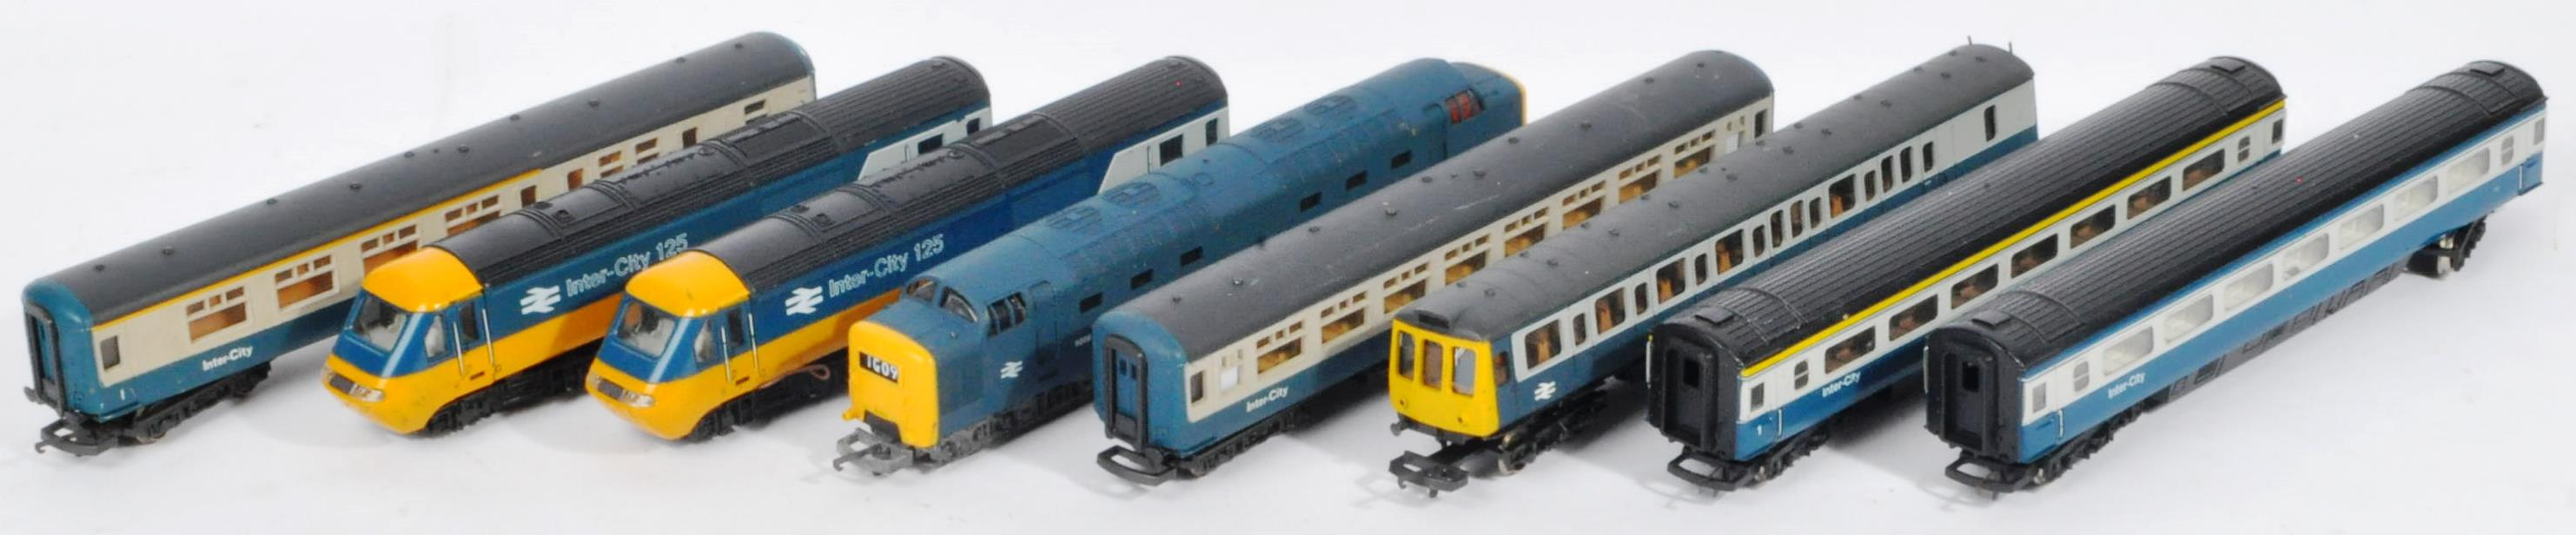 COLLECTION OF ASSORTED DIESEL 00 GAUGE TRAINSET LOCOMOTIVES & CARRIAGES